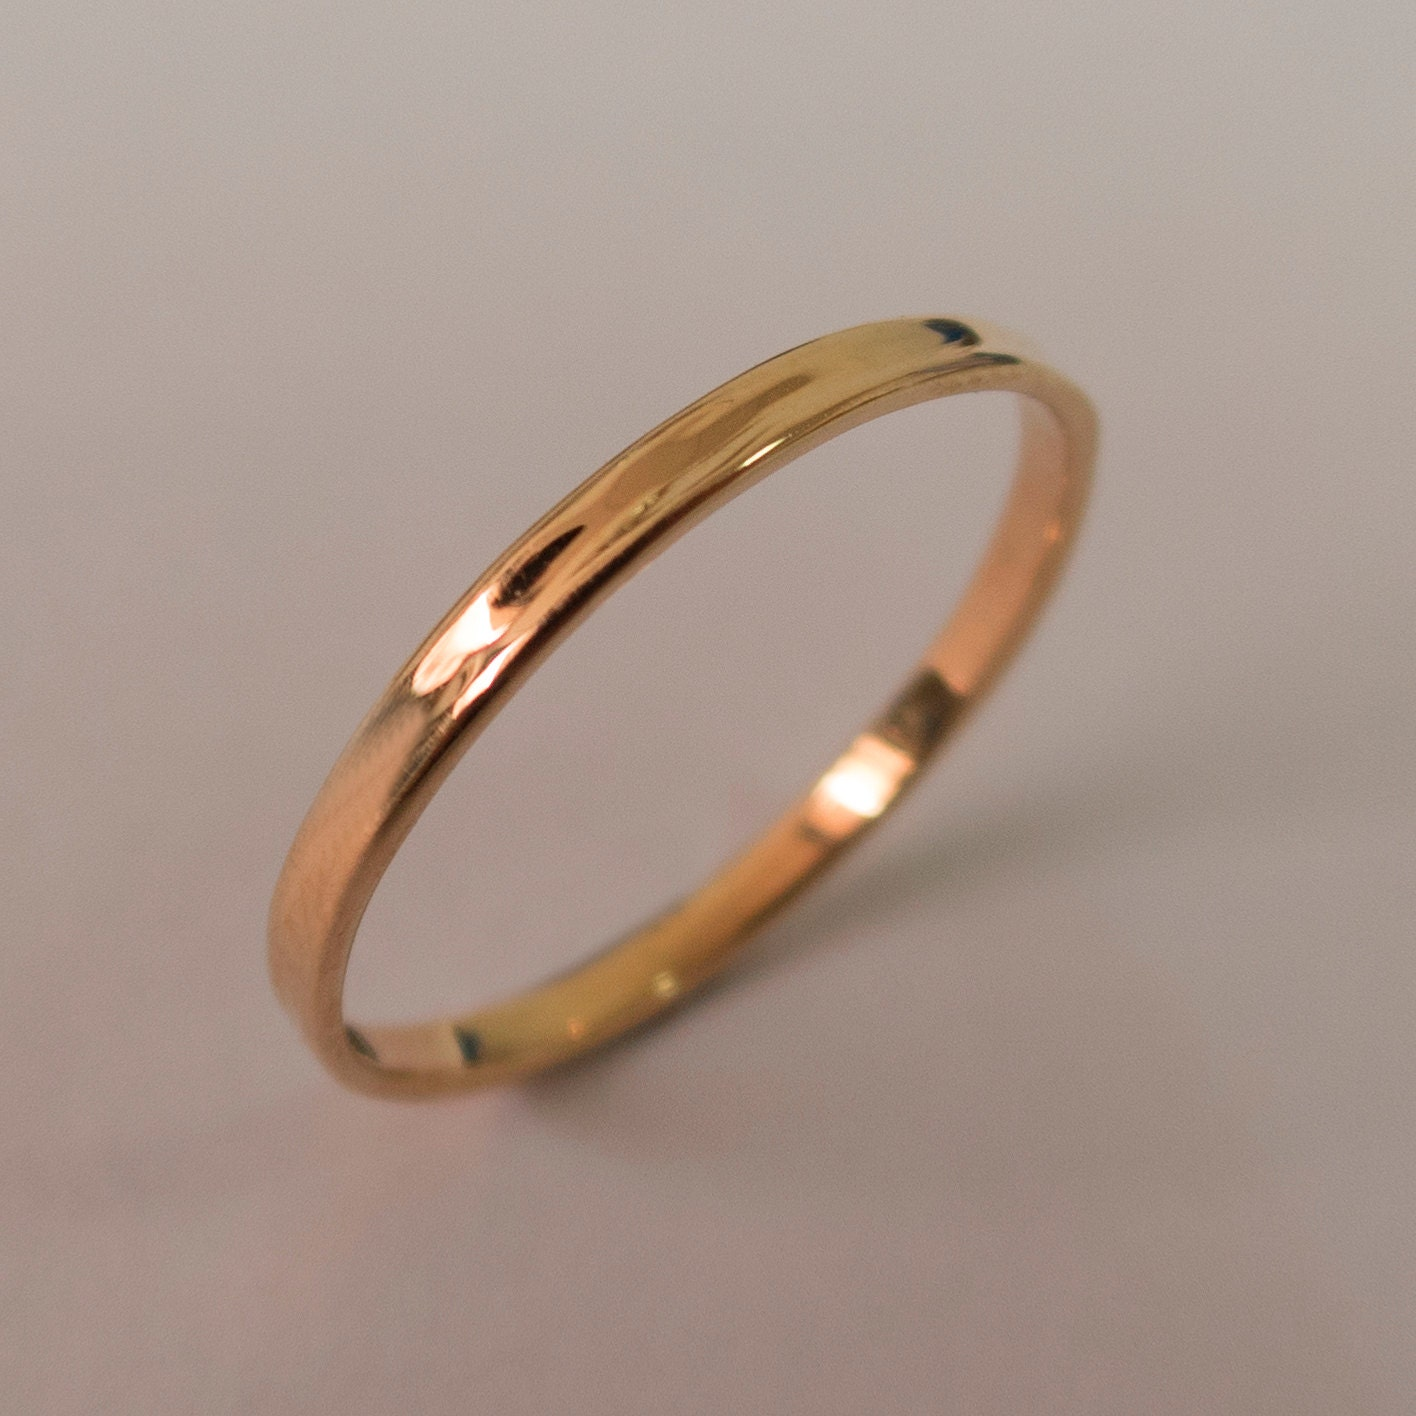 simple gold wedding band 14k rose gold ring rose gold. Black Bedroom Furniture Sets. Home Design Ideas